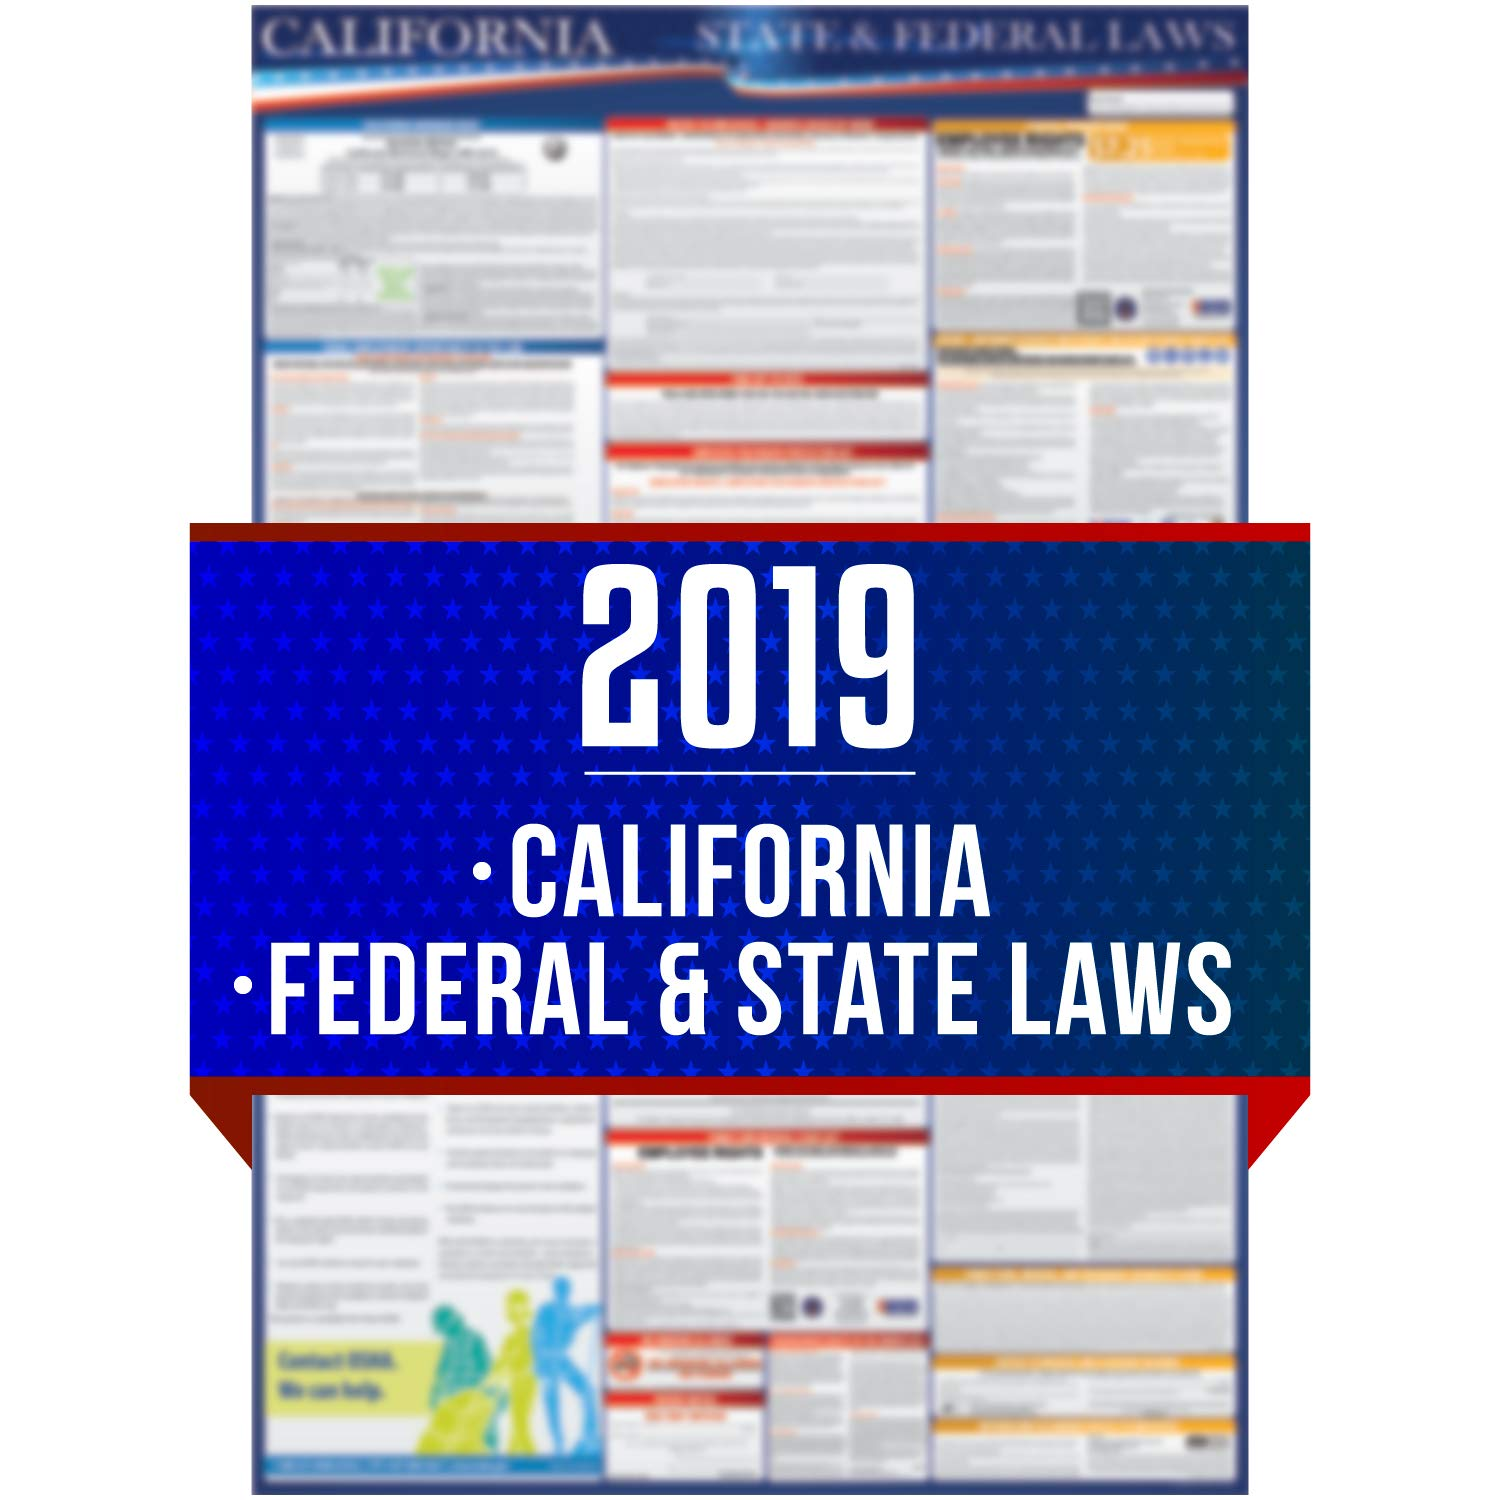 California New Laws 2020.2019 California State And Federal Labor Laws Poster Osha Workplace Compliant 24 X 36 All In One Required Posting Uv Coated